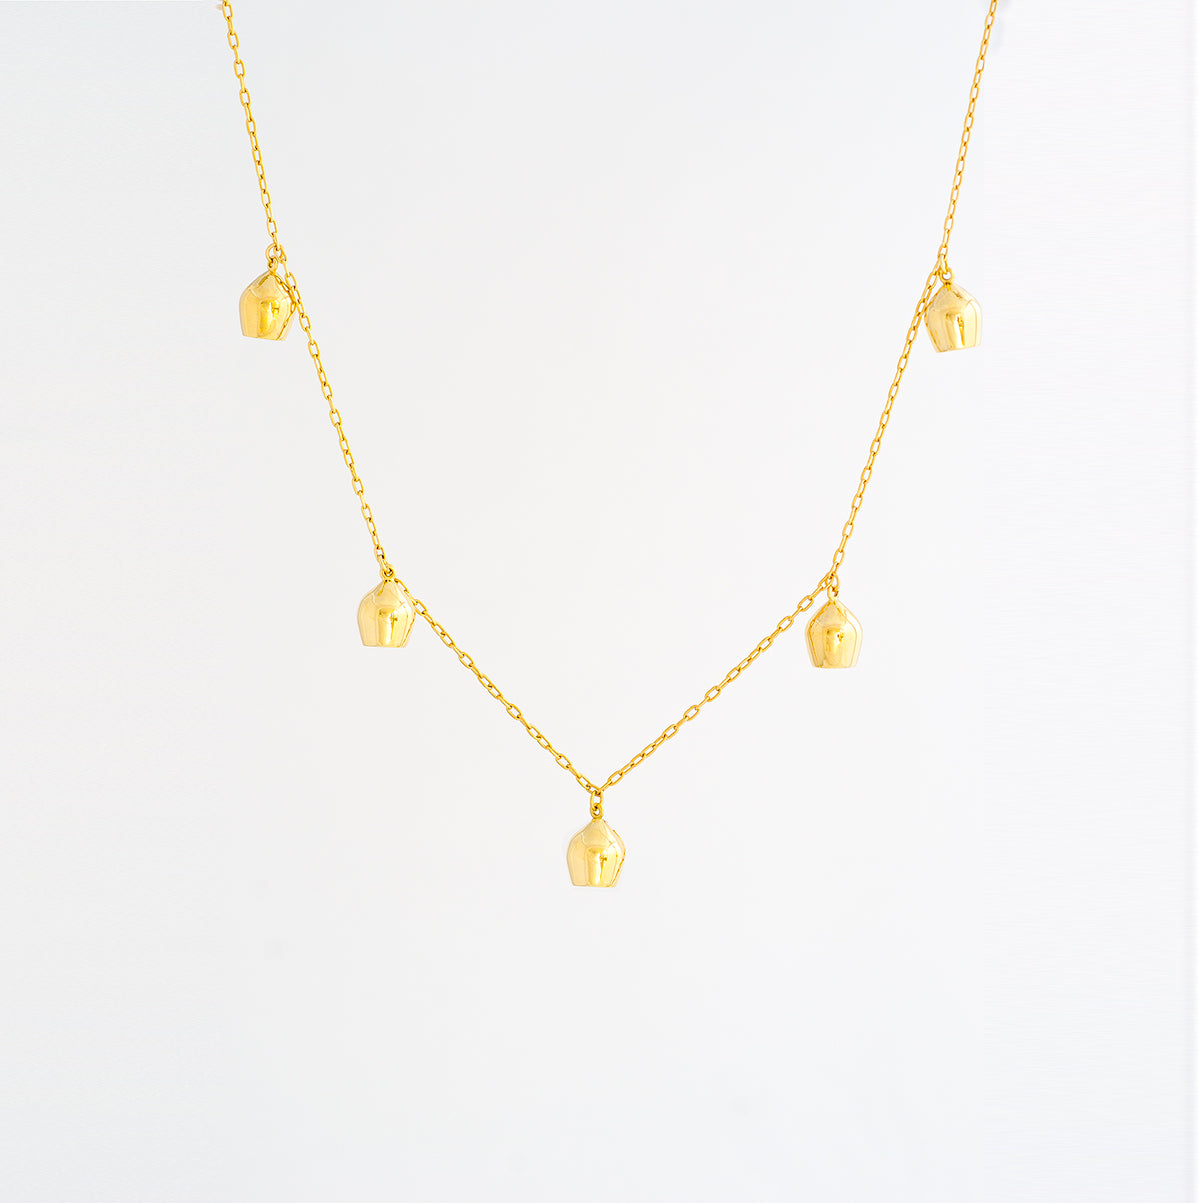 Gold Necklace with Five Lune Charms